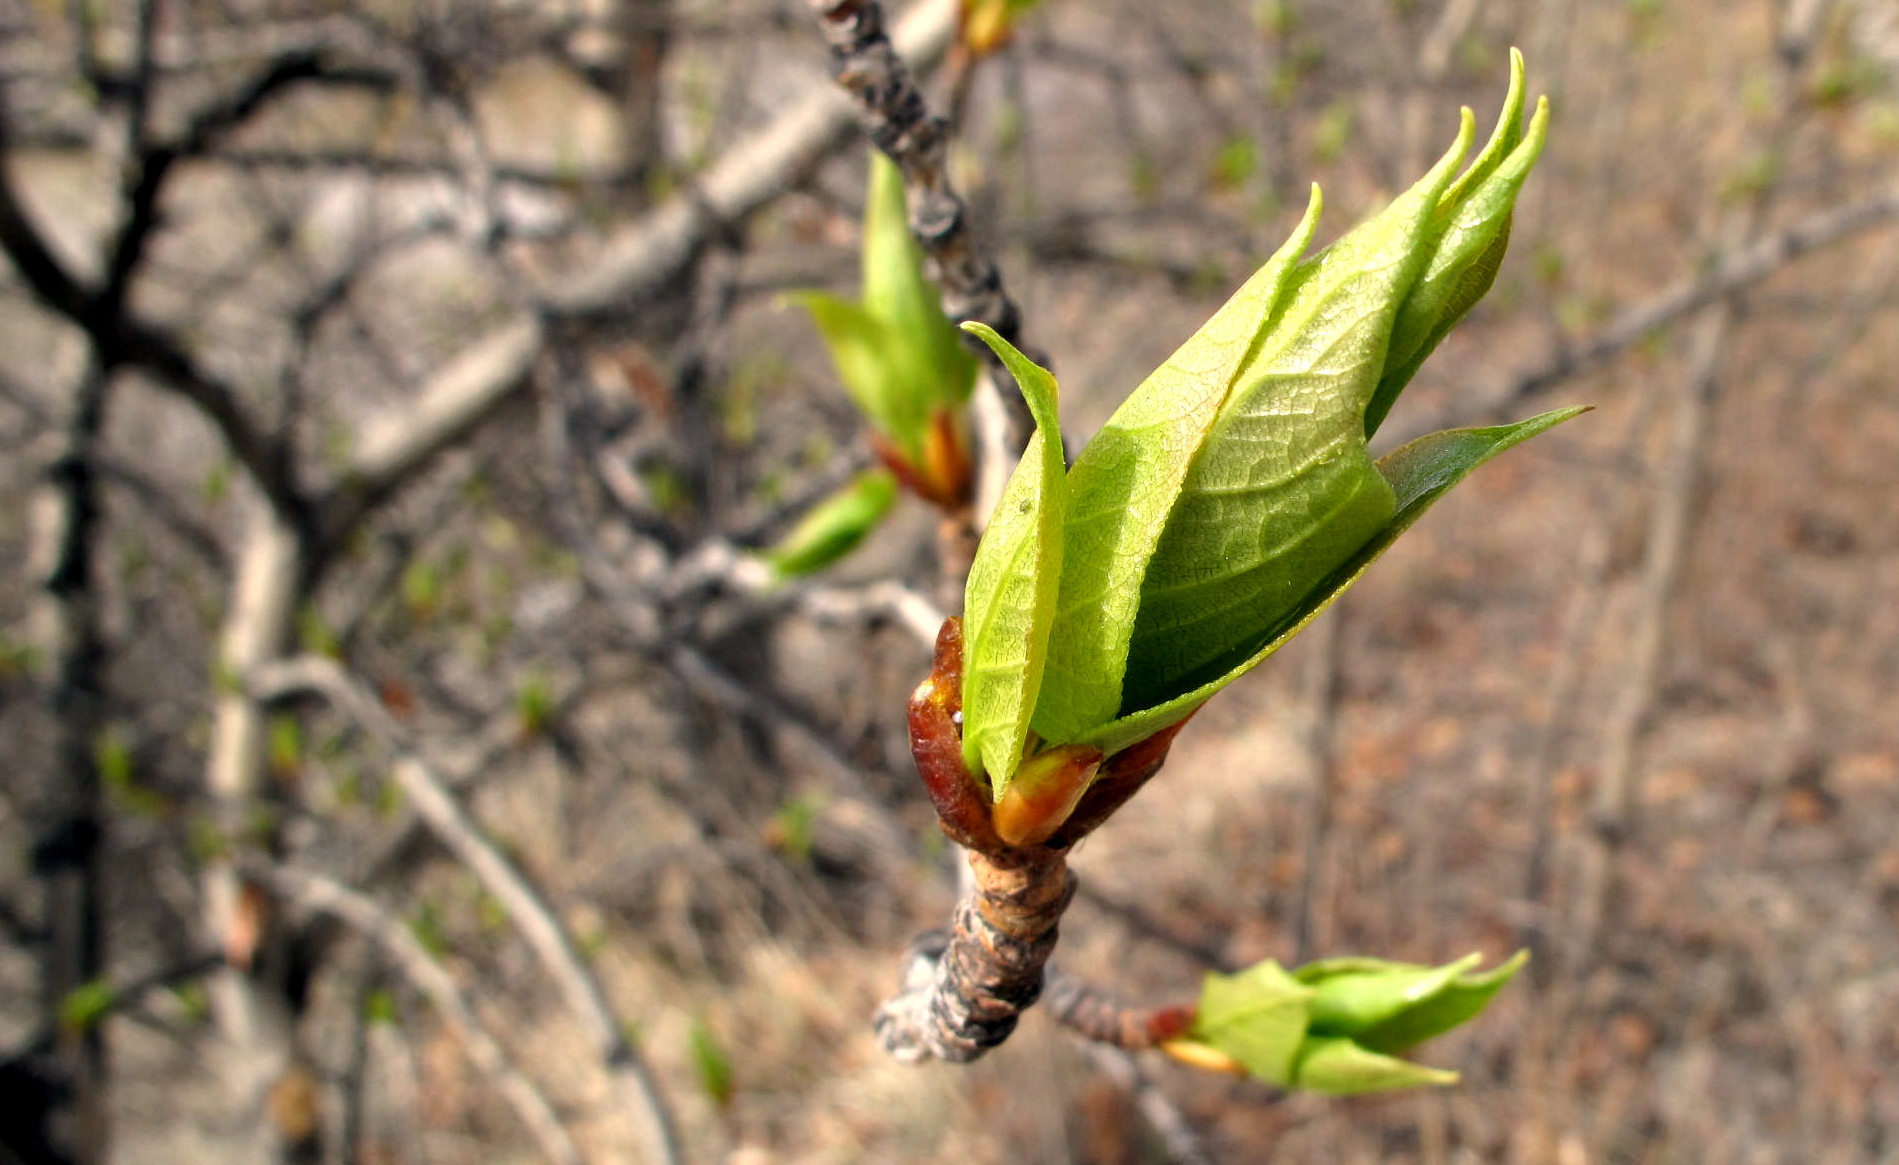 Leaves twist out of buds oat the end of a balsam poplar twig. (Photo by Ned Rozell)